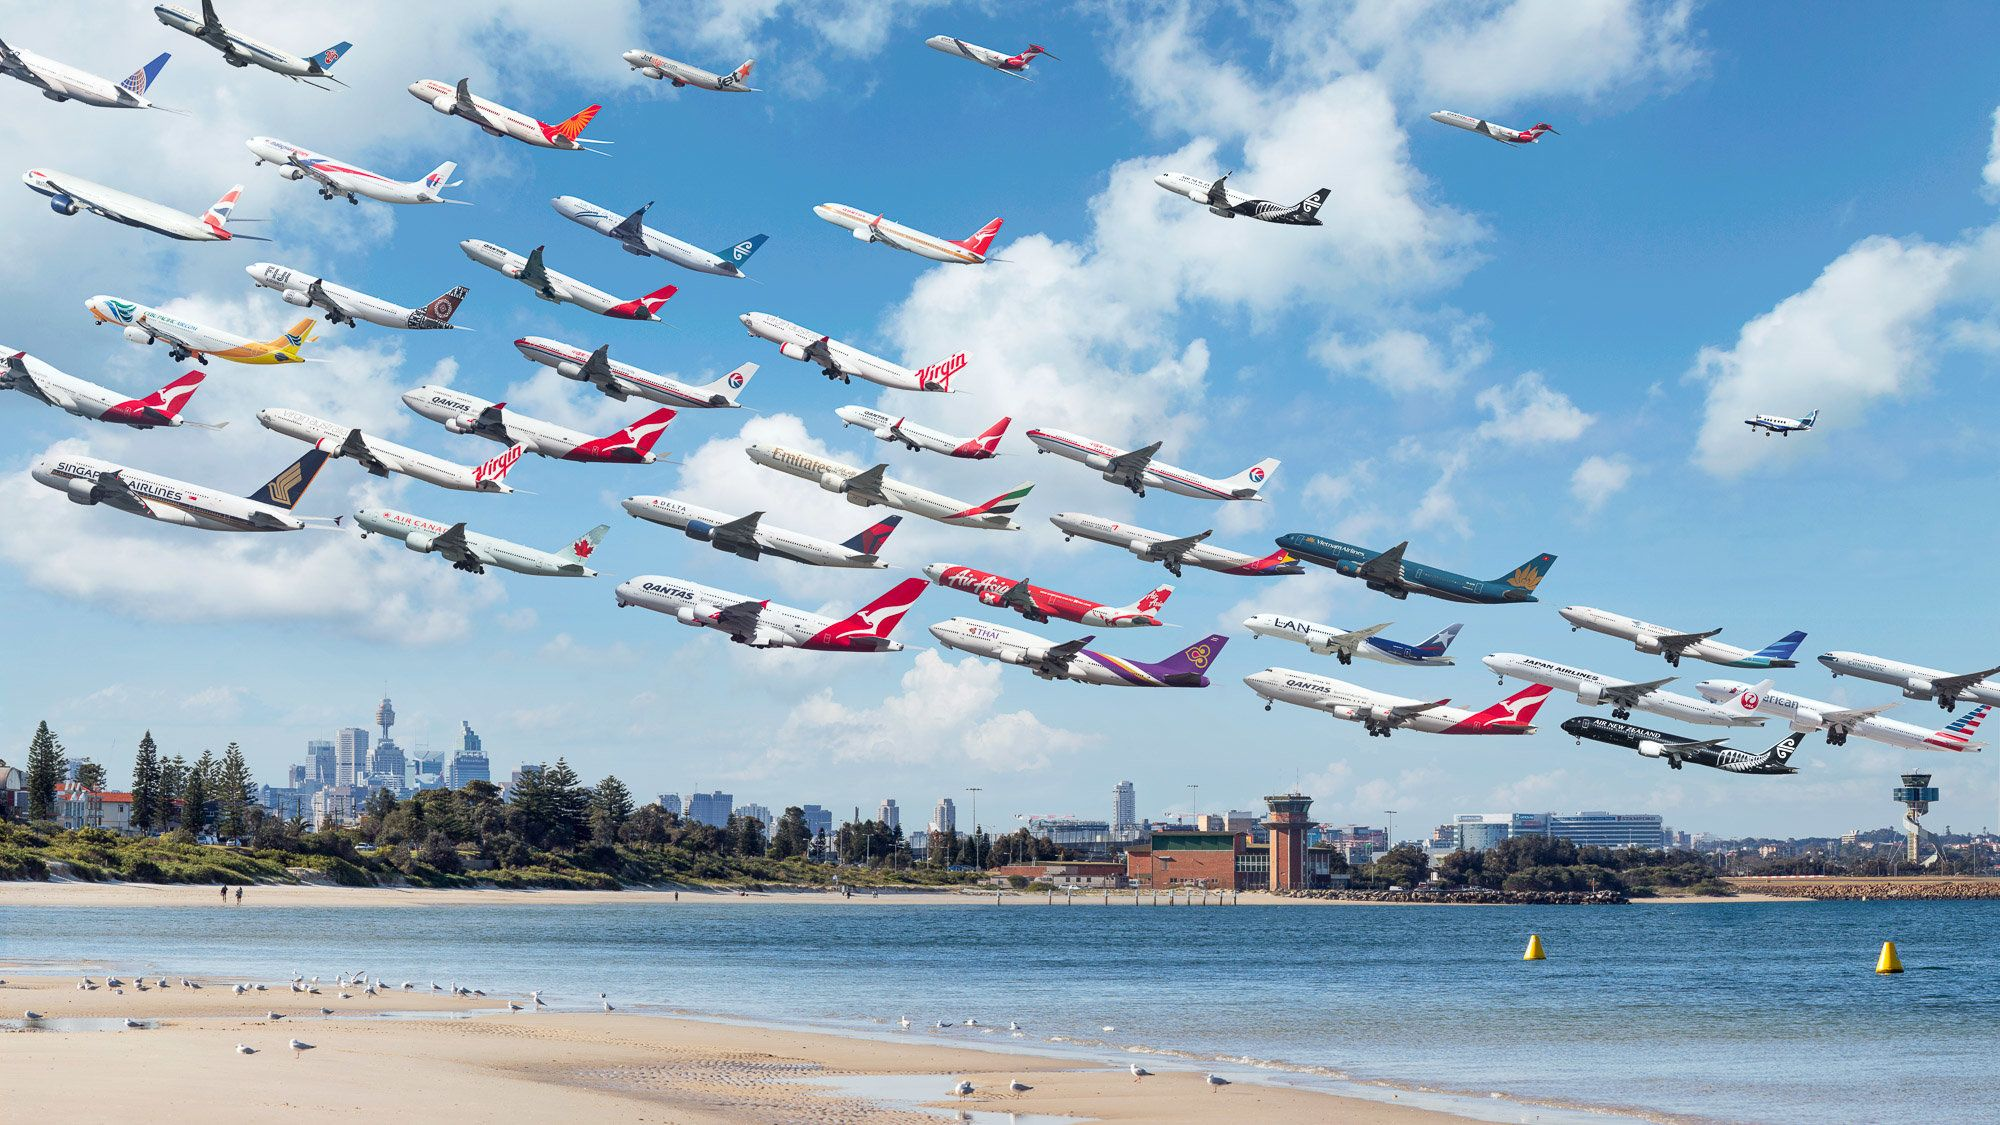 These Stunning 'Airportraits' Show The Beauty Of Flight At Airports Around The